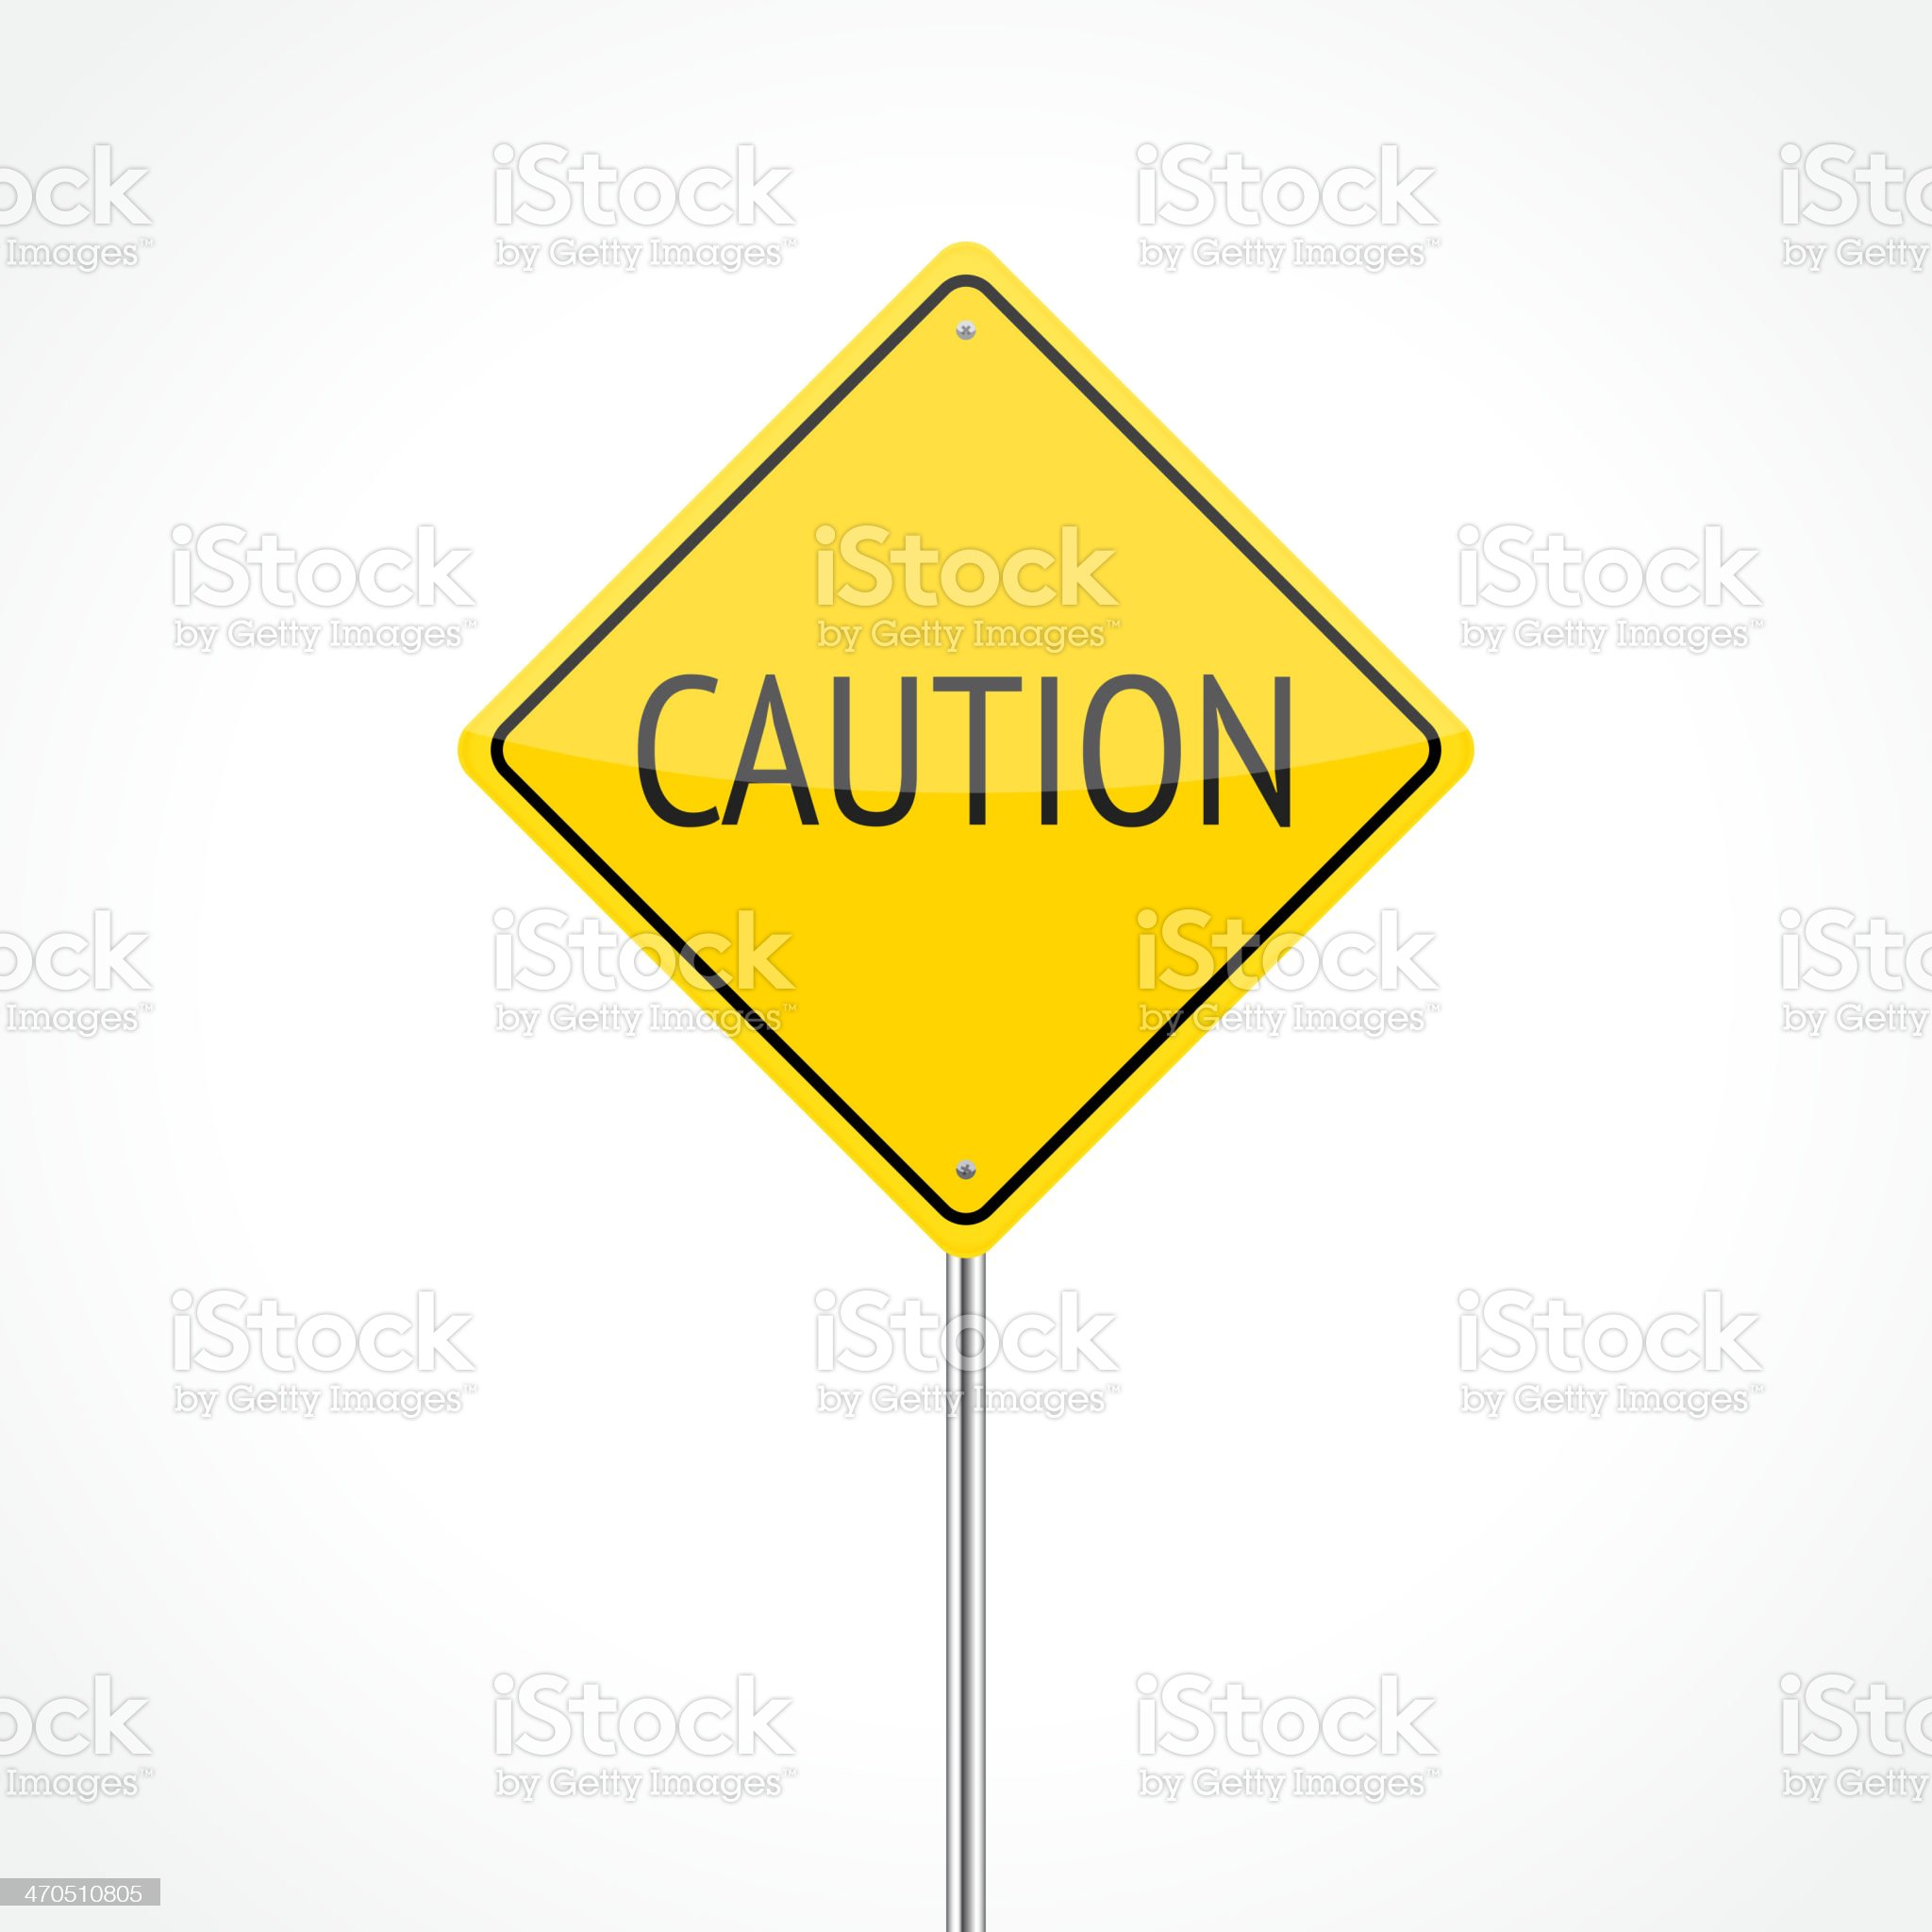 Caution traffic sign royalty-free stock vector art